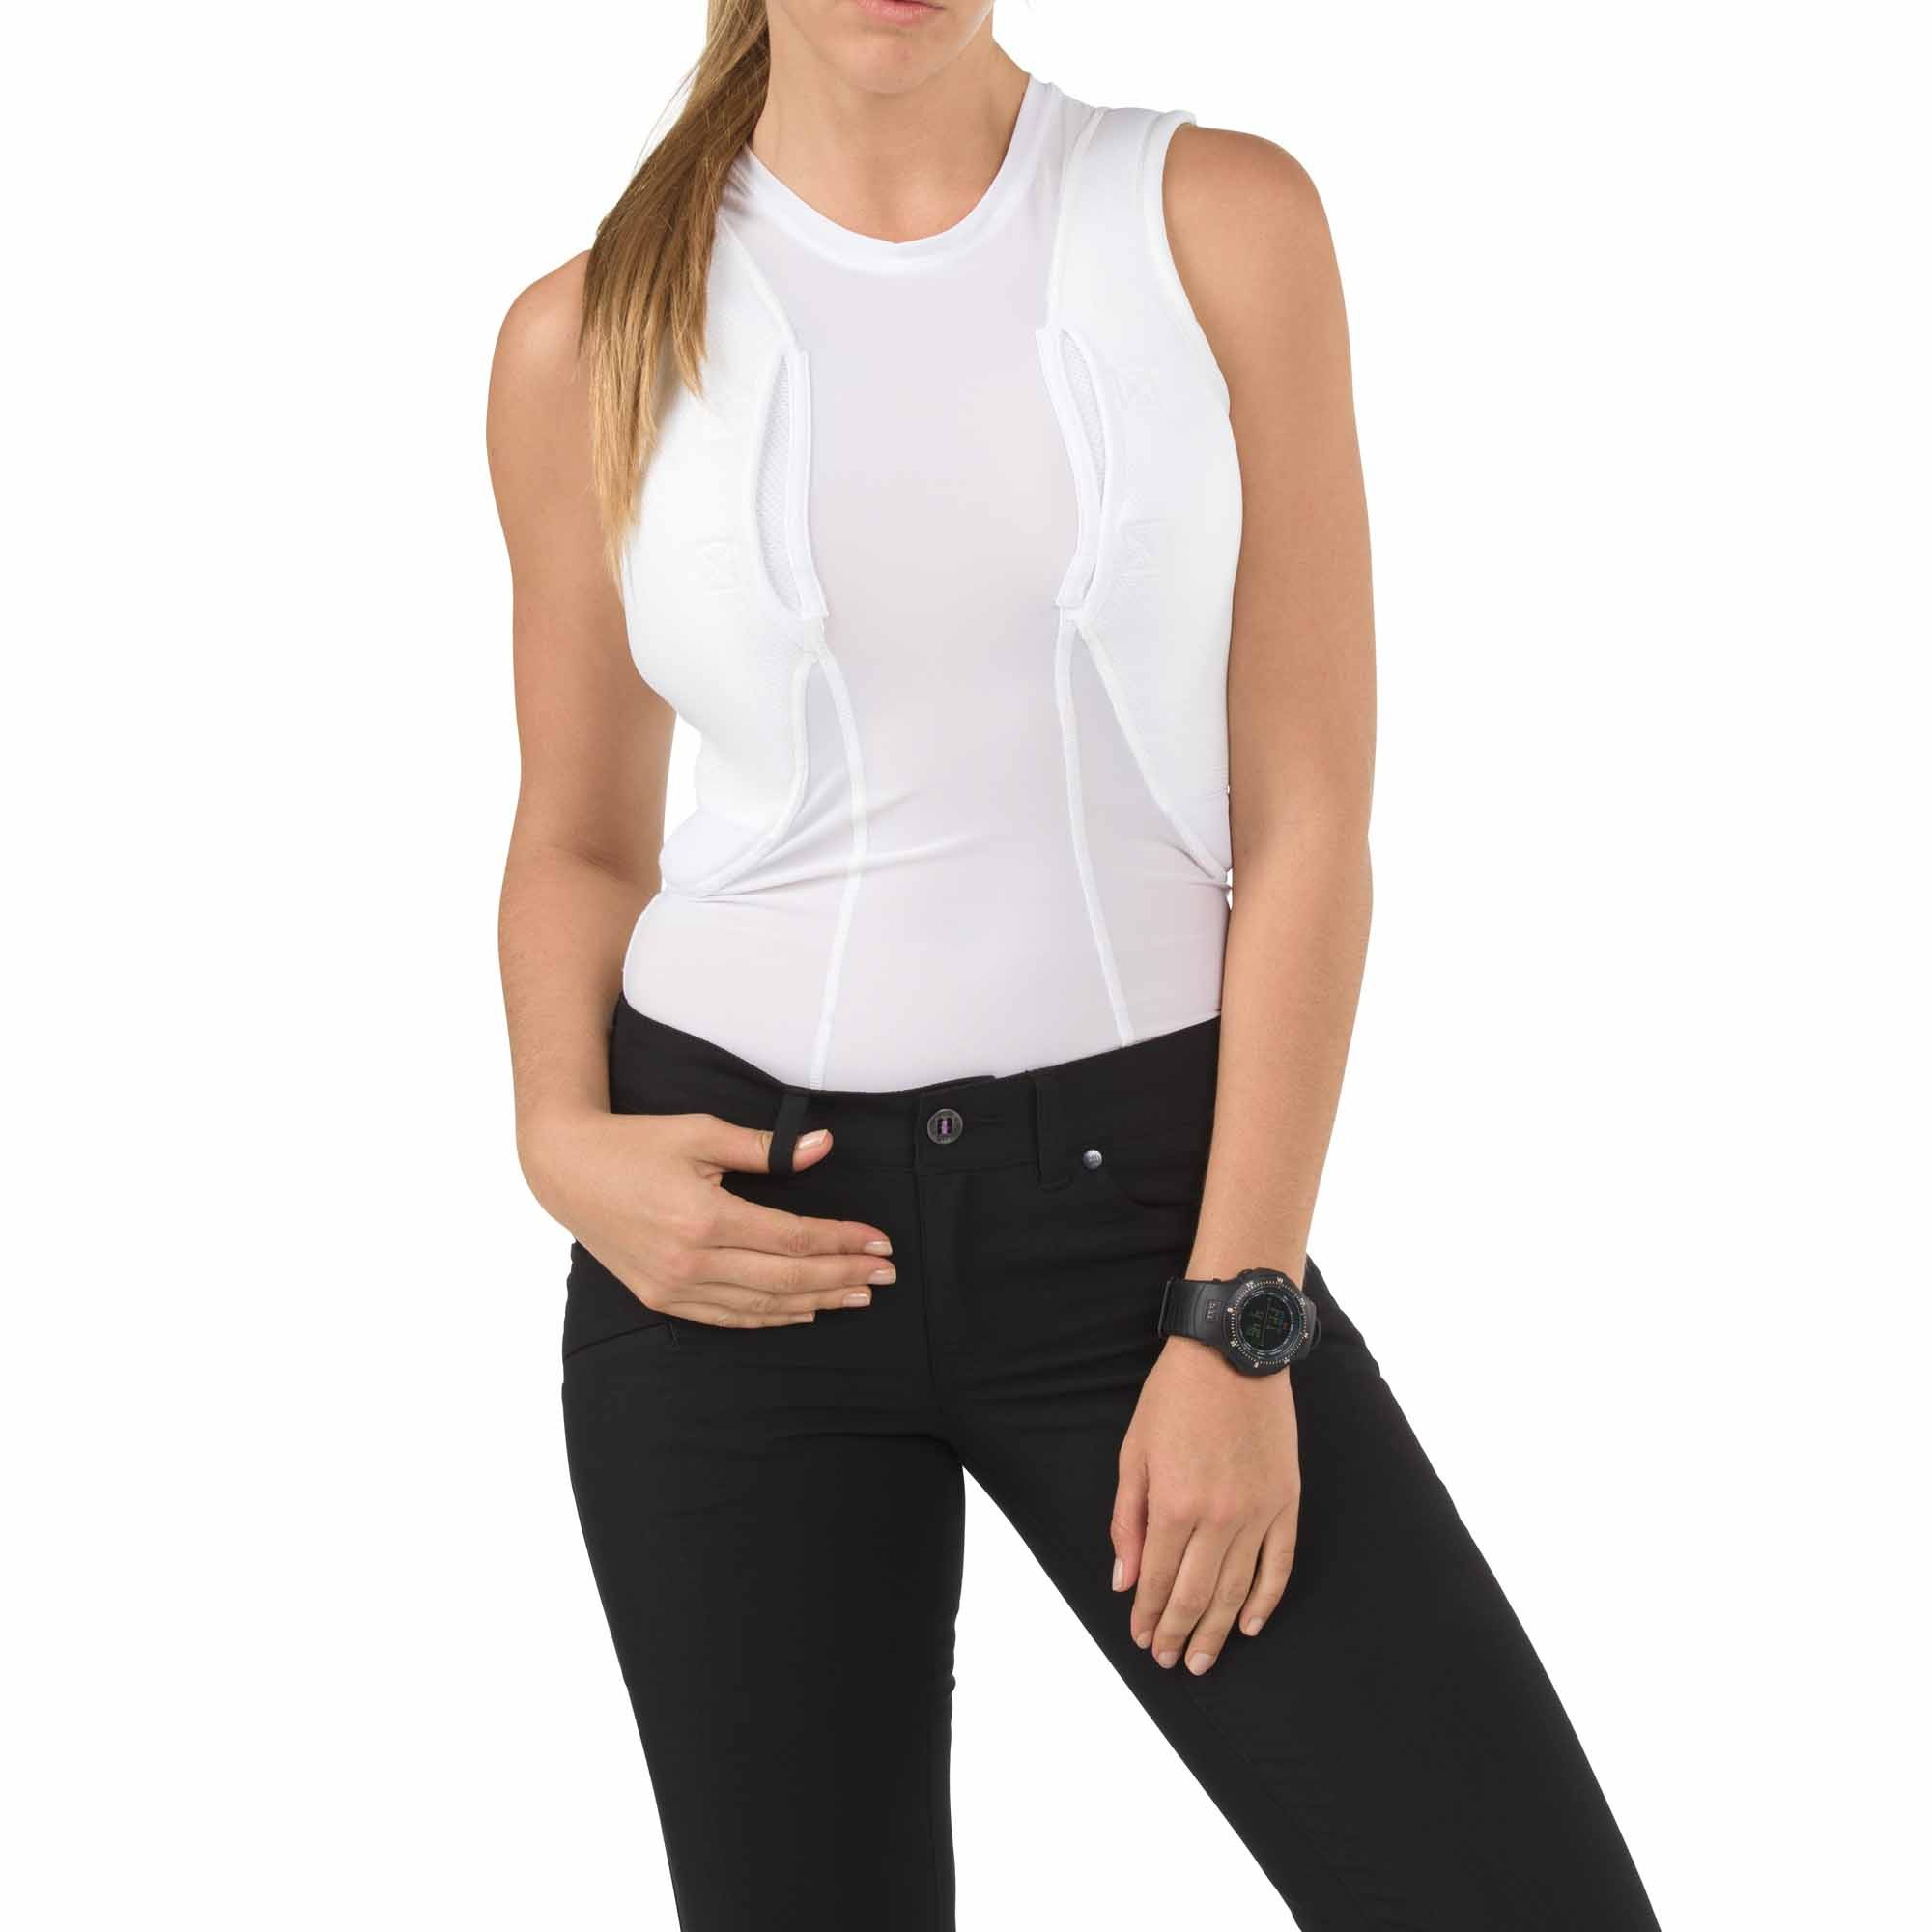 5.11 Women's Holster Shirt